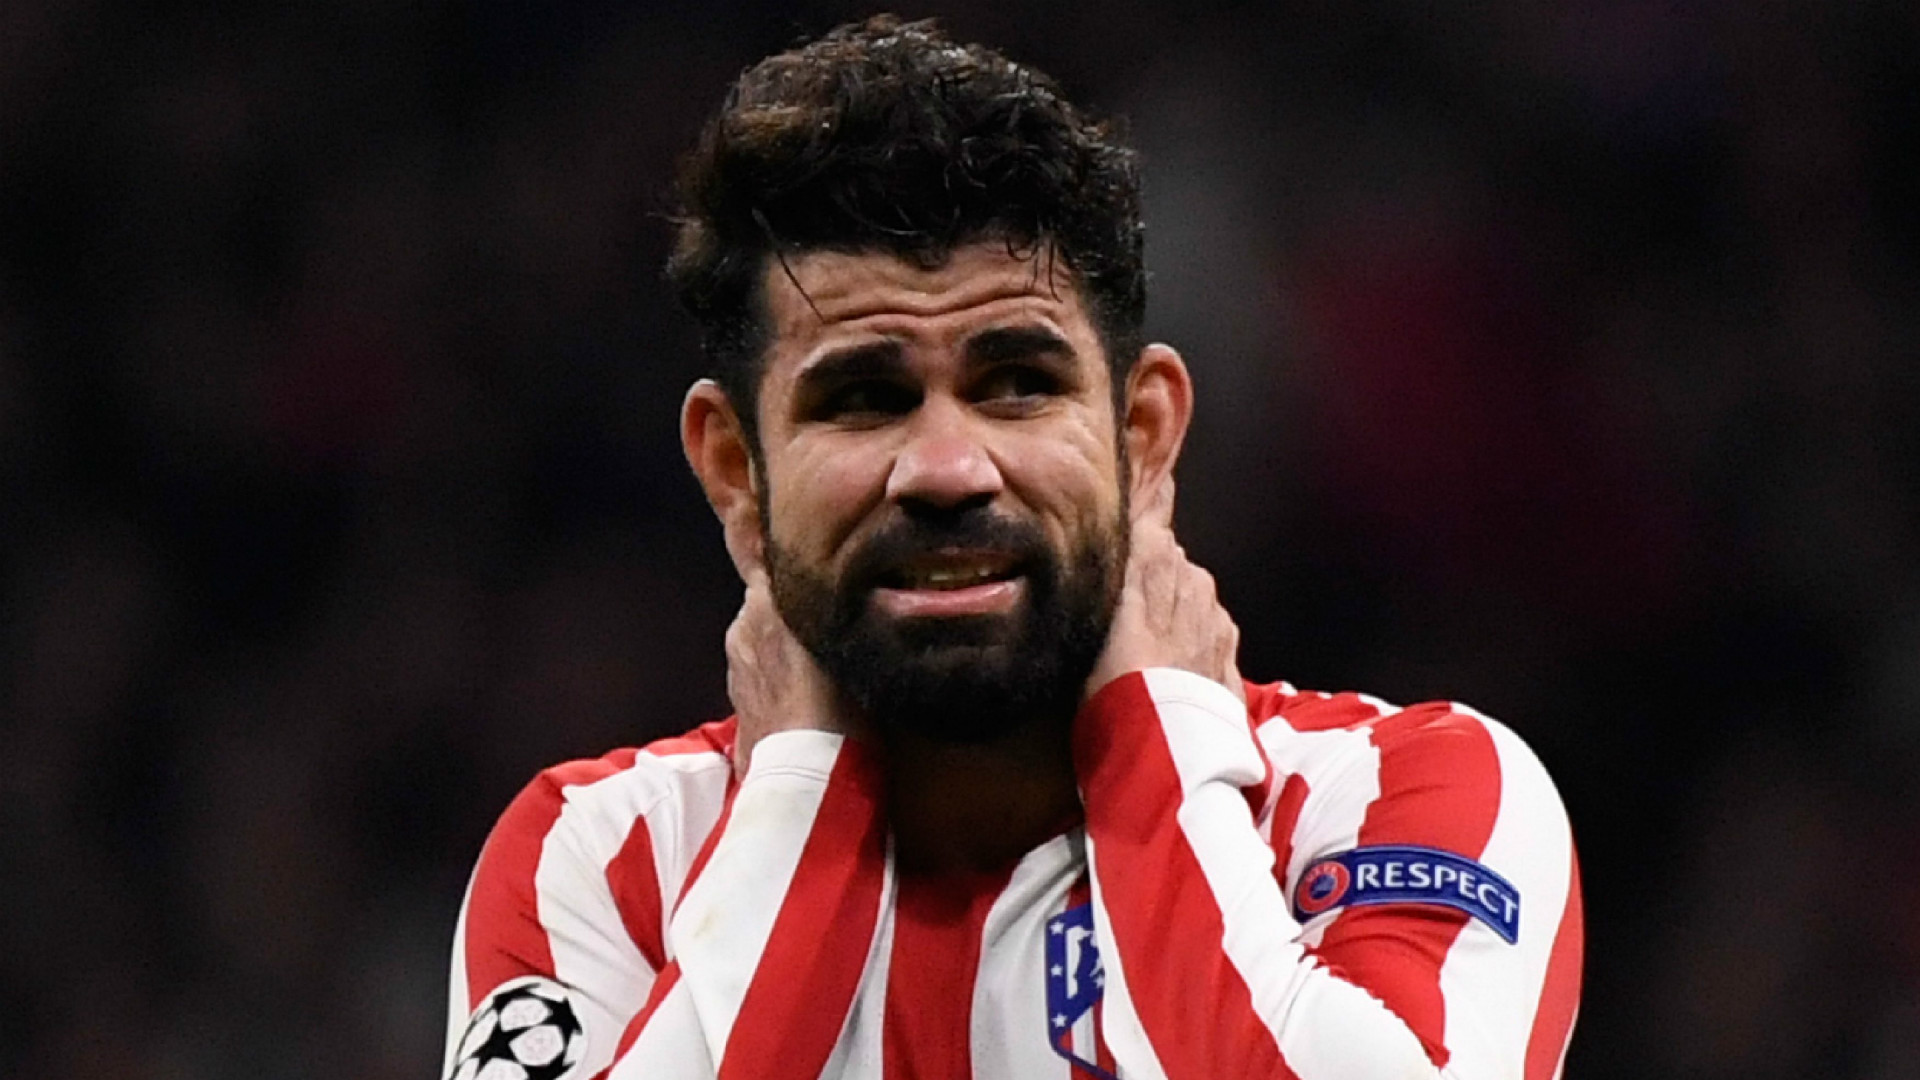 Atletico Madrid offer Costa to clubs in England, Italy and France but find no takers